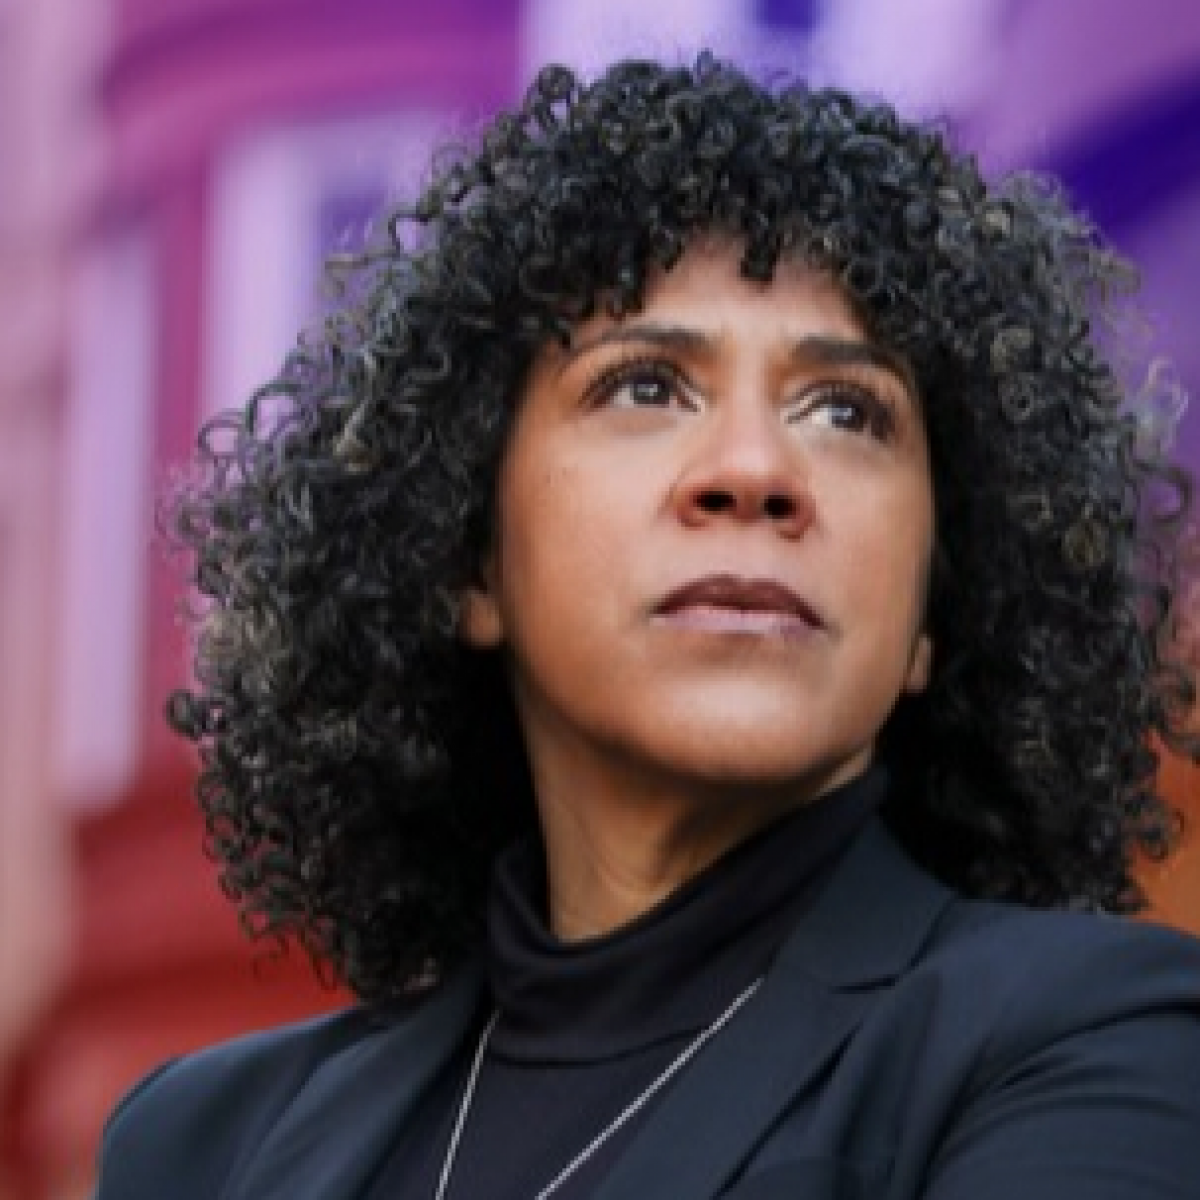 NYC Mayoral Candidate Dianne Morales Believes She is What NYC Needs